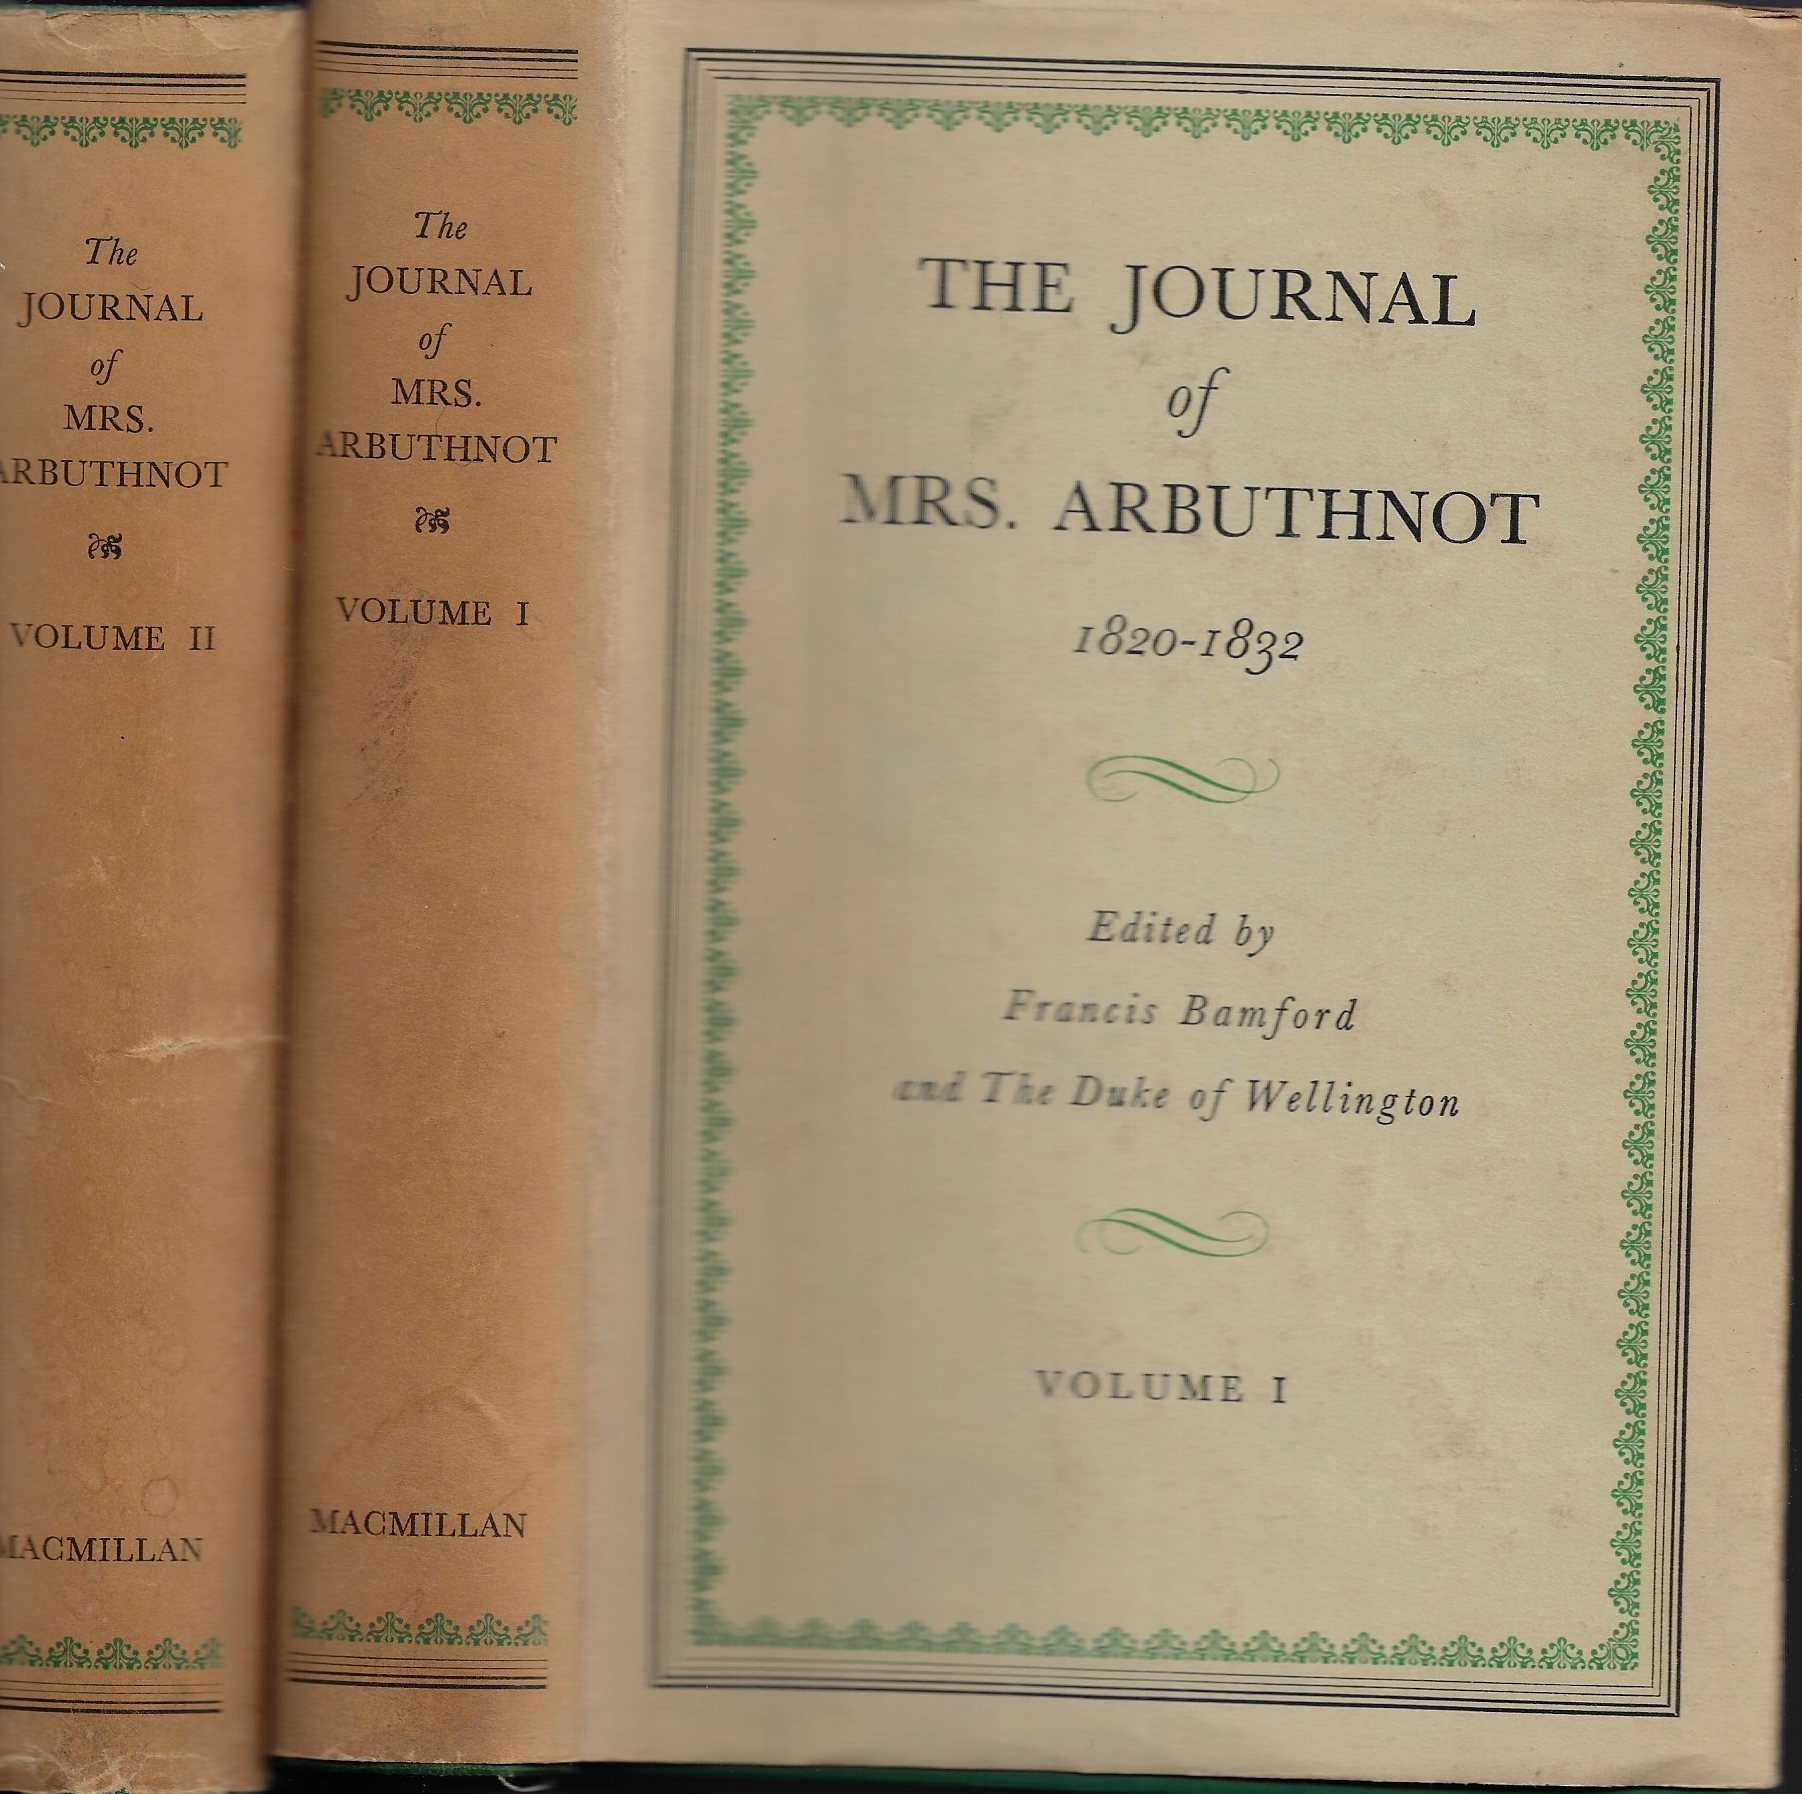 Image for The Journals of Mrs. Arbuthnot 1820-1832 [Volume I and II]